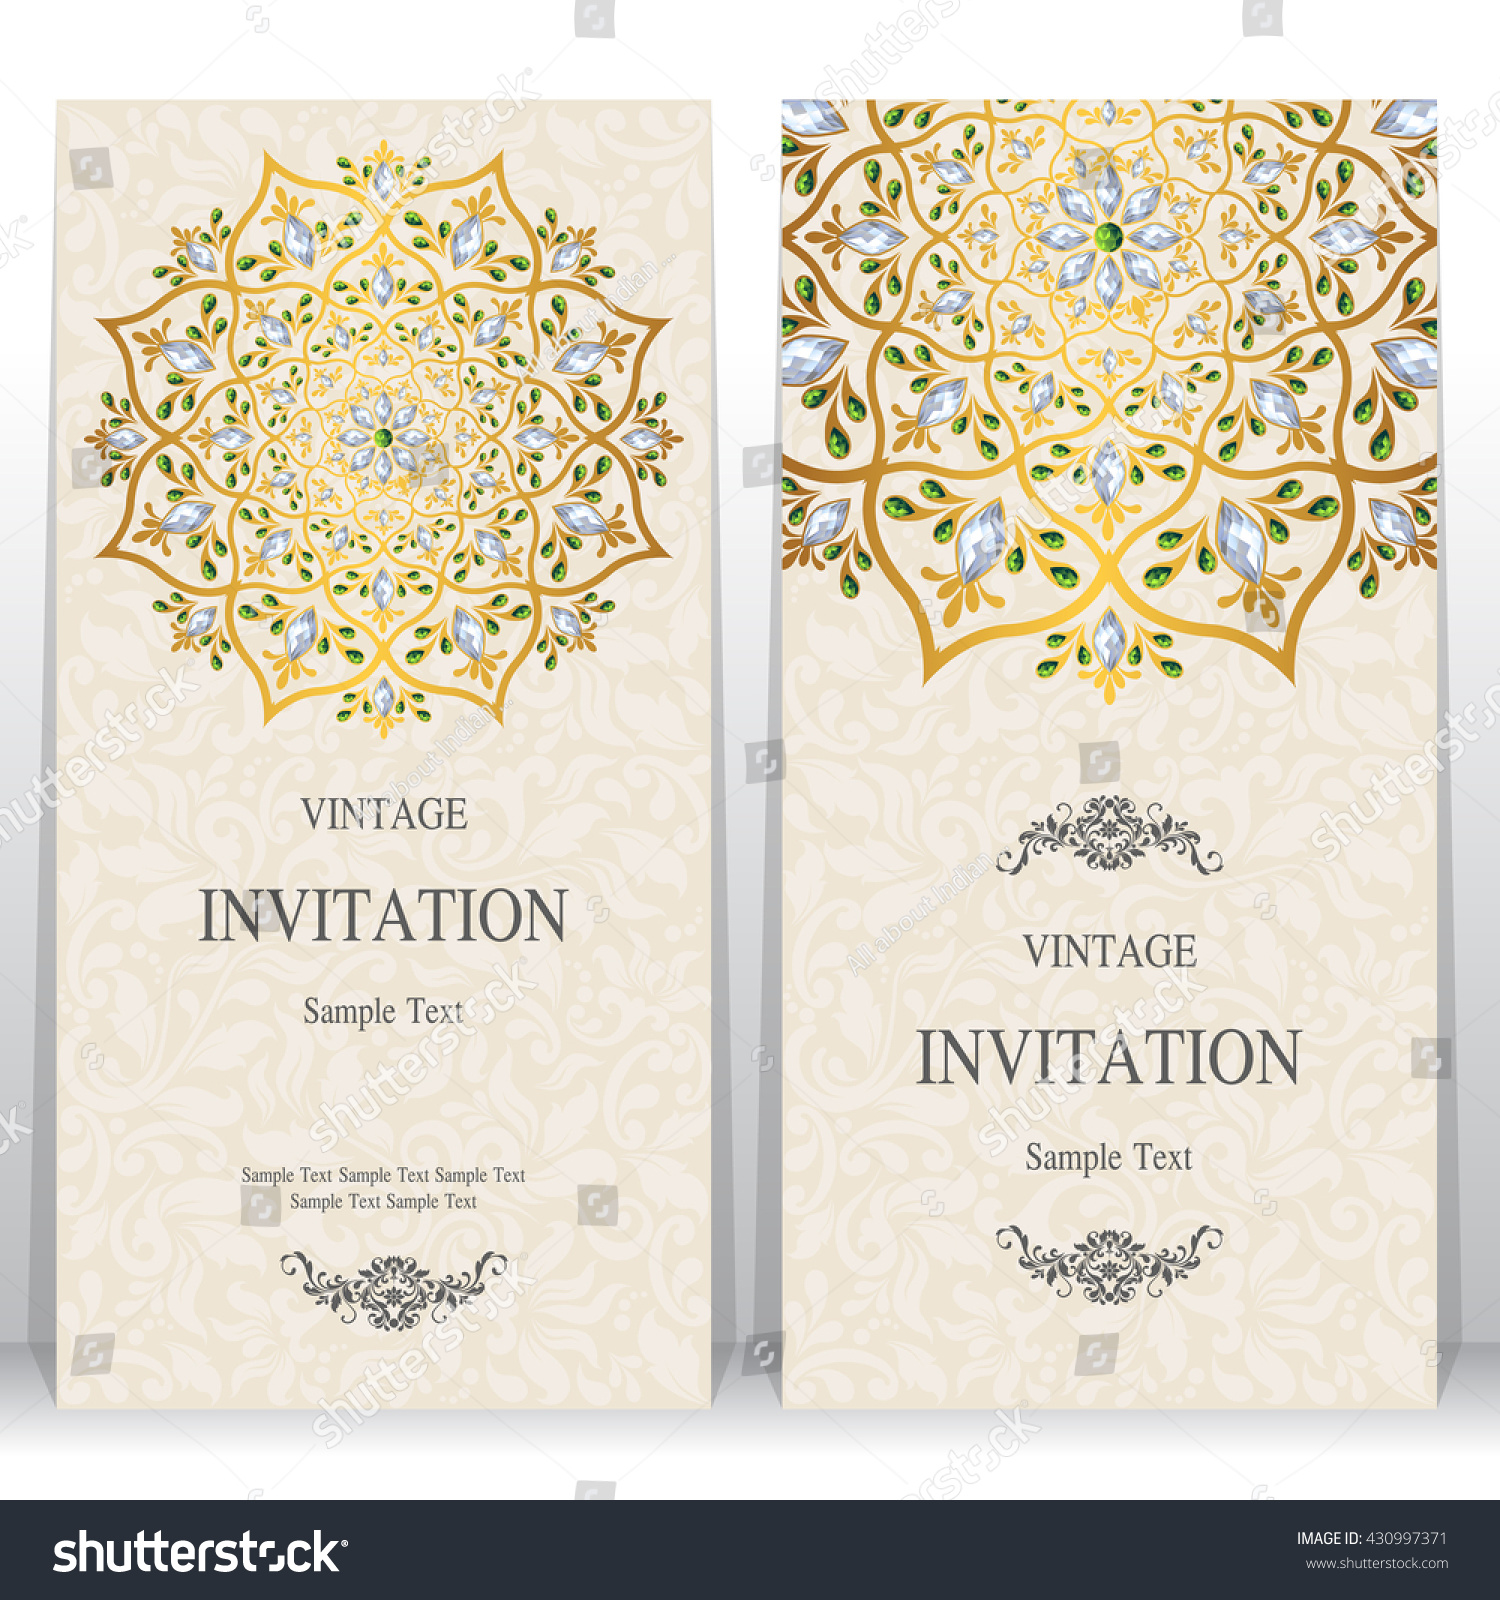 Wedding Card Invitation Card Card Abstract Stock Vector HD (Royalty ...